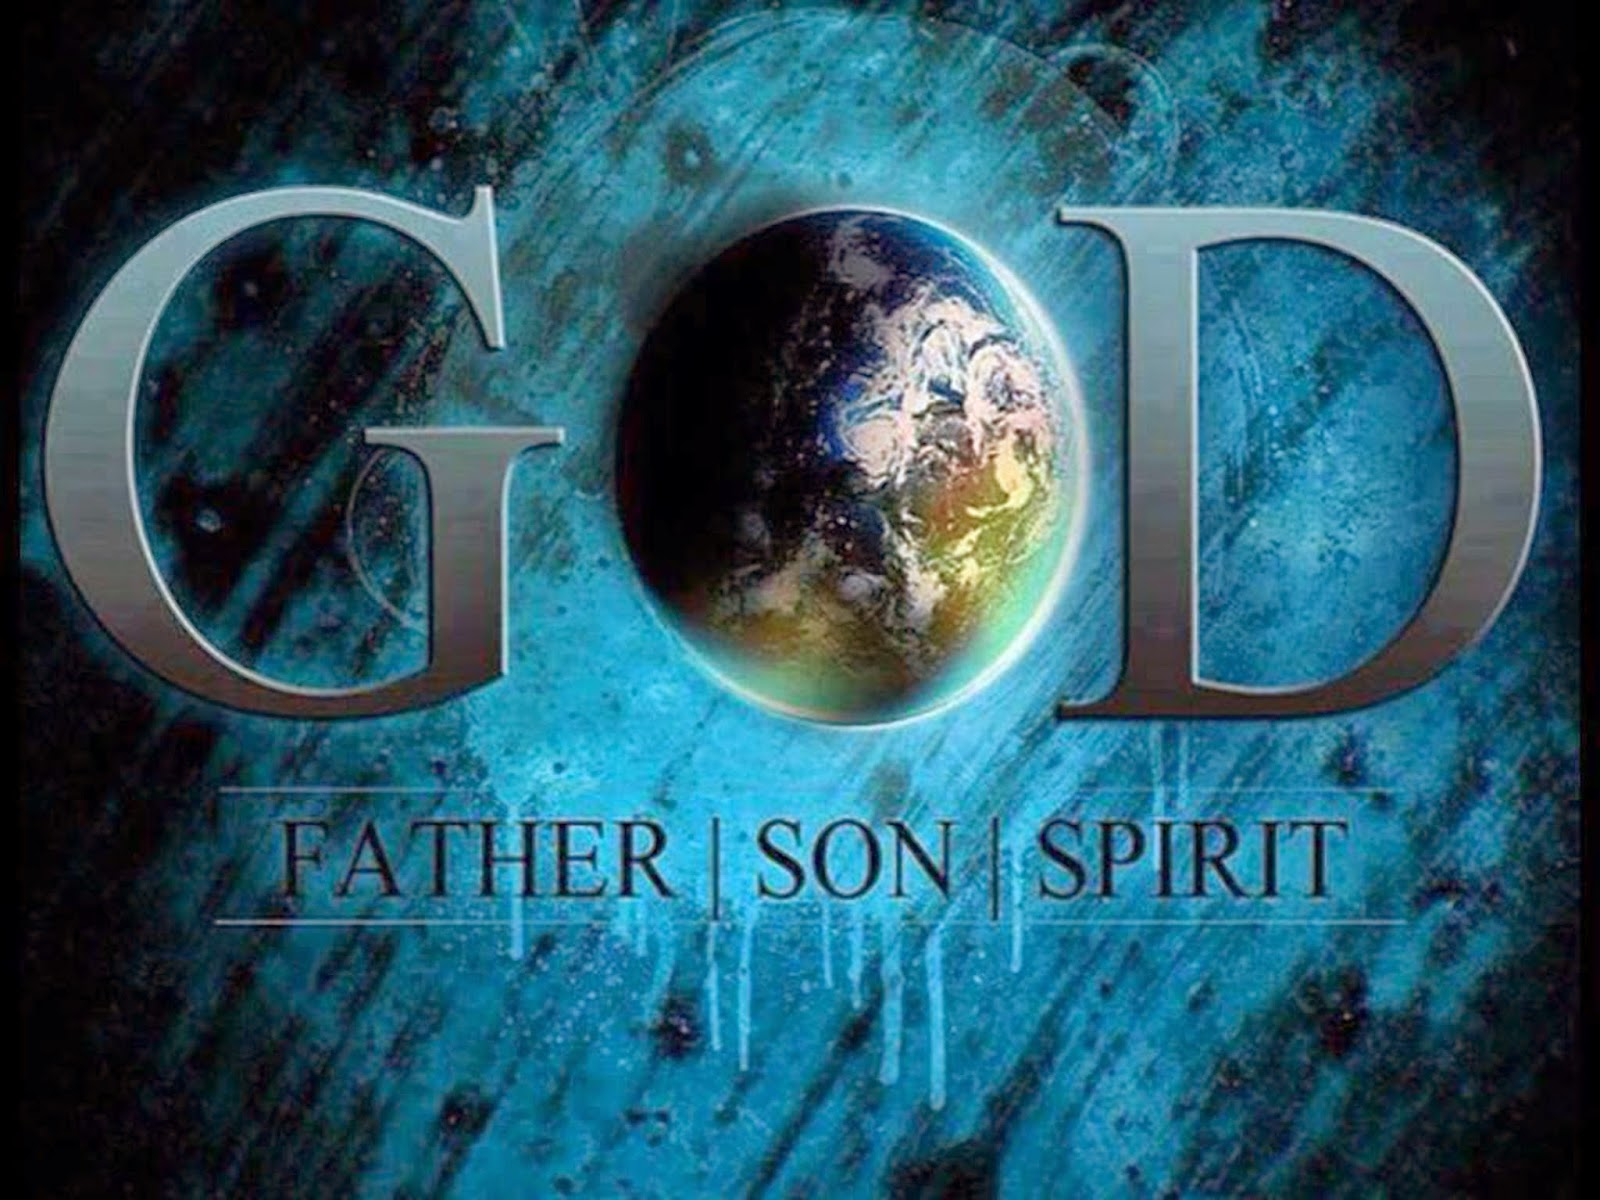 one god The nicene creed books | introduction | latin | french | greek we believe in one god the father almighty, maker of heaven and earth, and of all things visible and invisible.